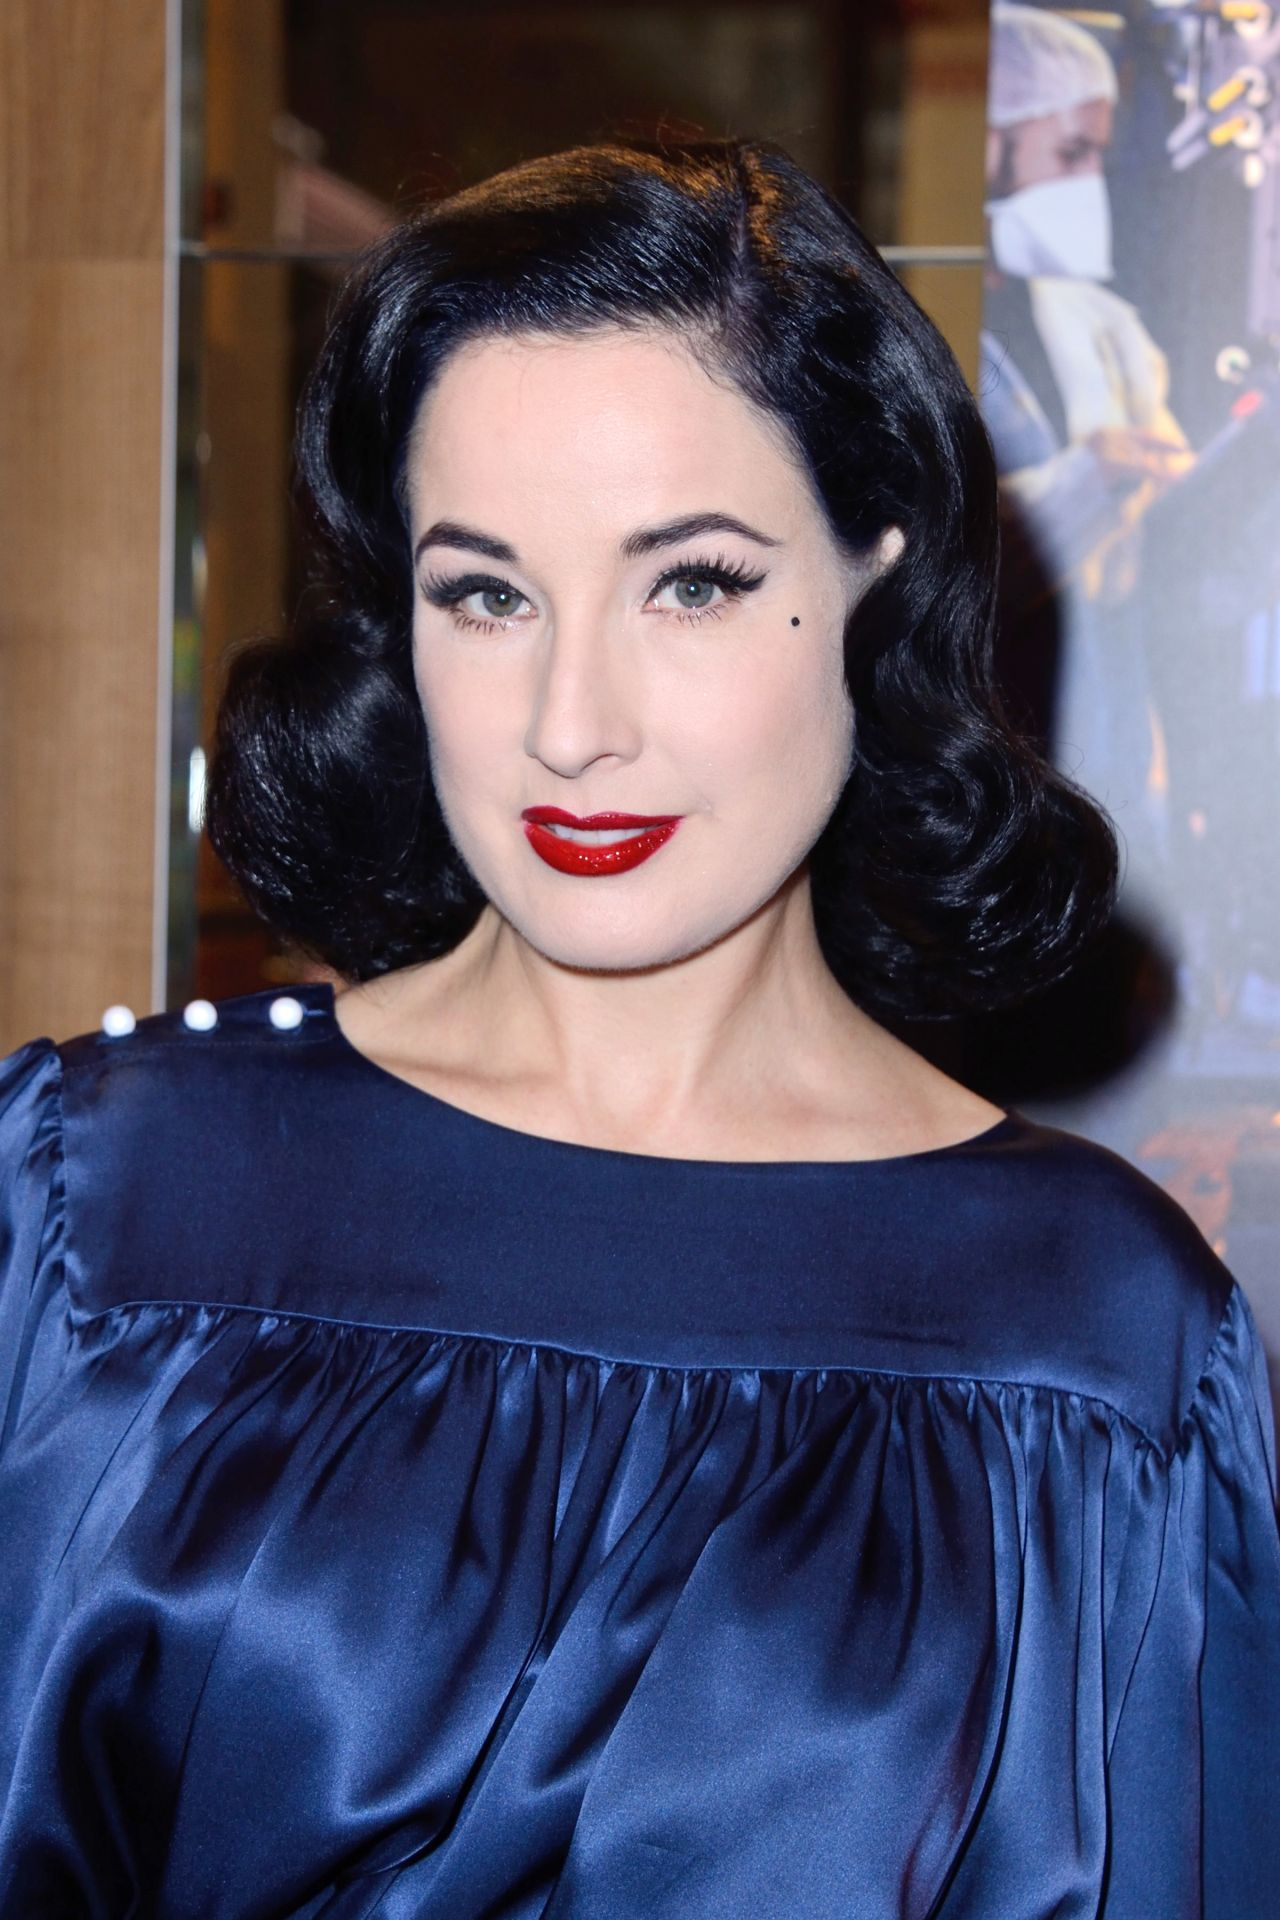 28ecb9e60b45 Dita Von Teese – Glamorama Celebrities by Ali Mahdavi Photo Exhibition in  Paris 09 25 2017